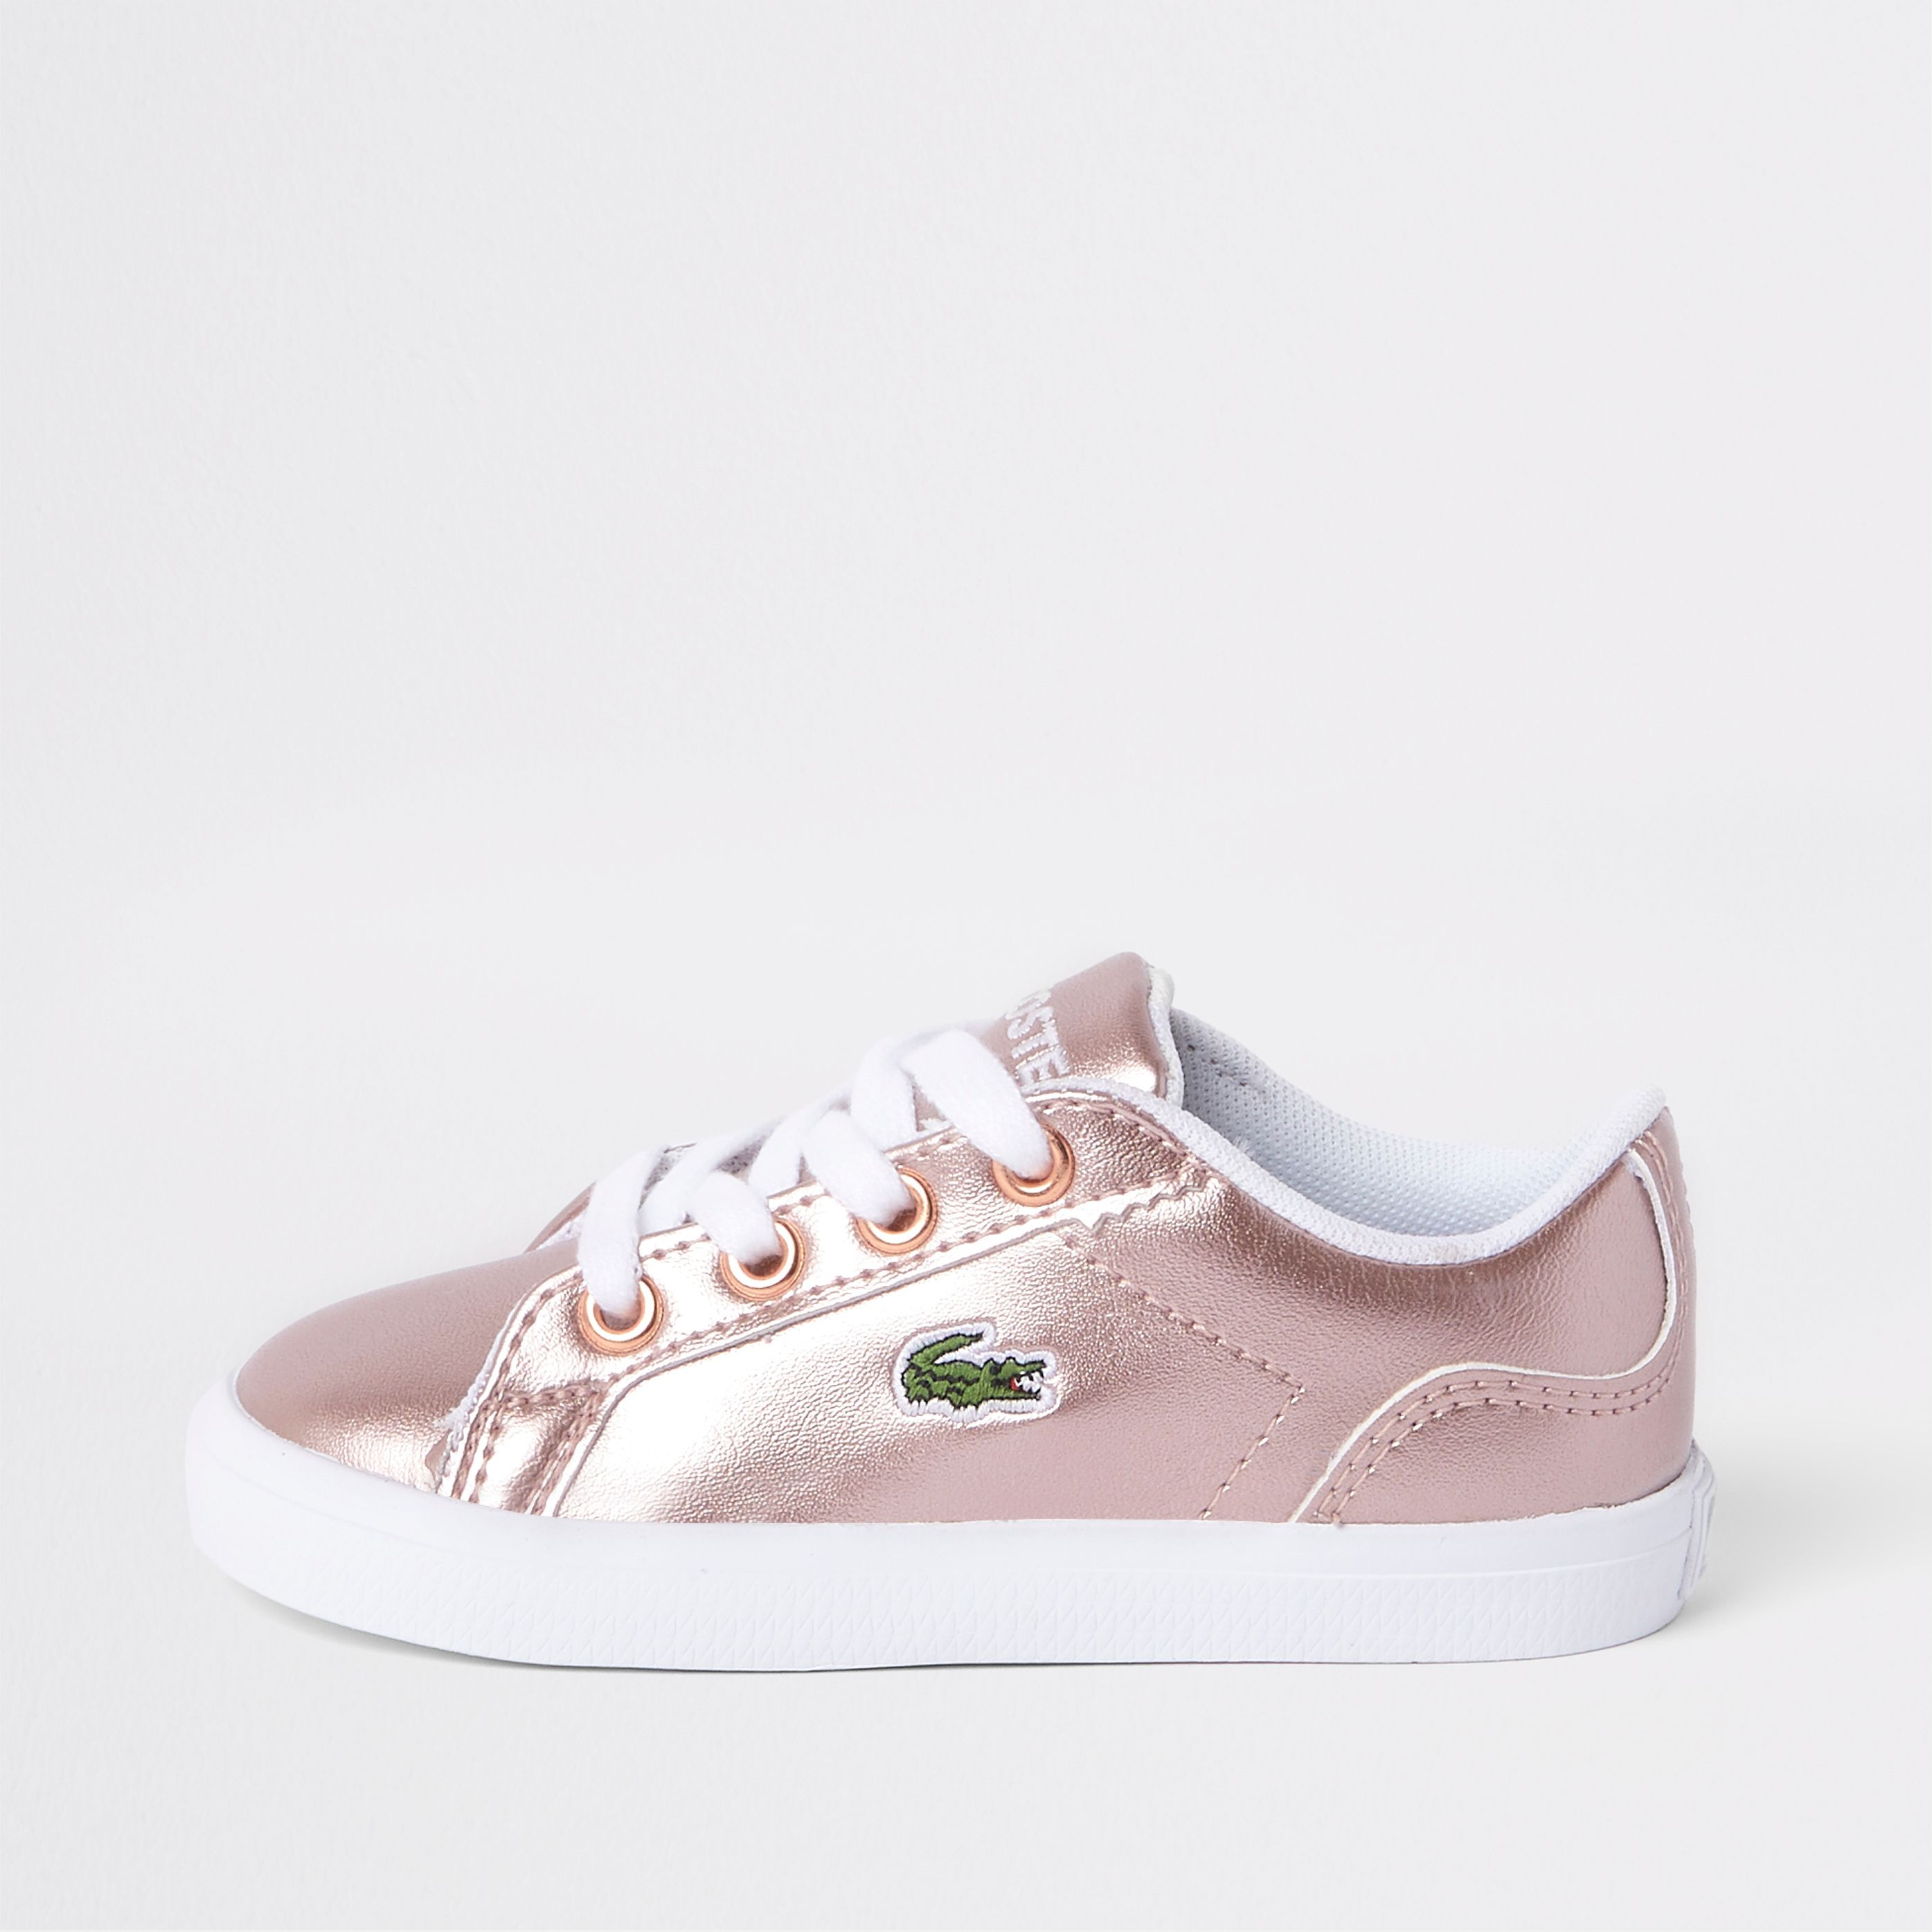 lacoste shoes for toddler girl - 50